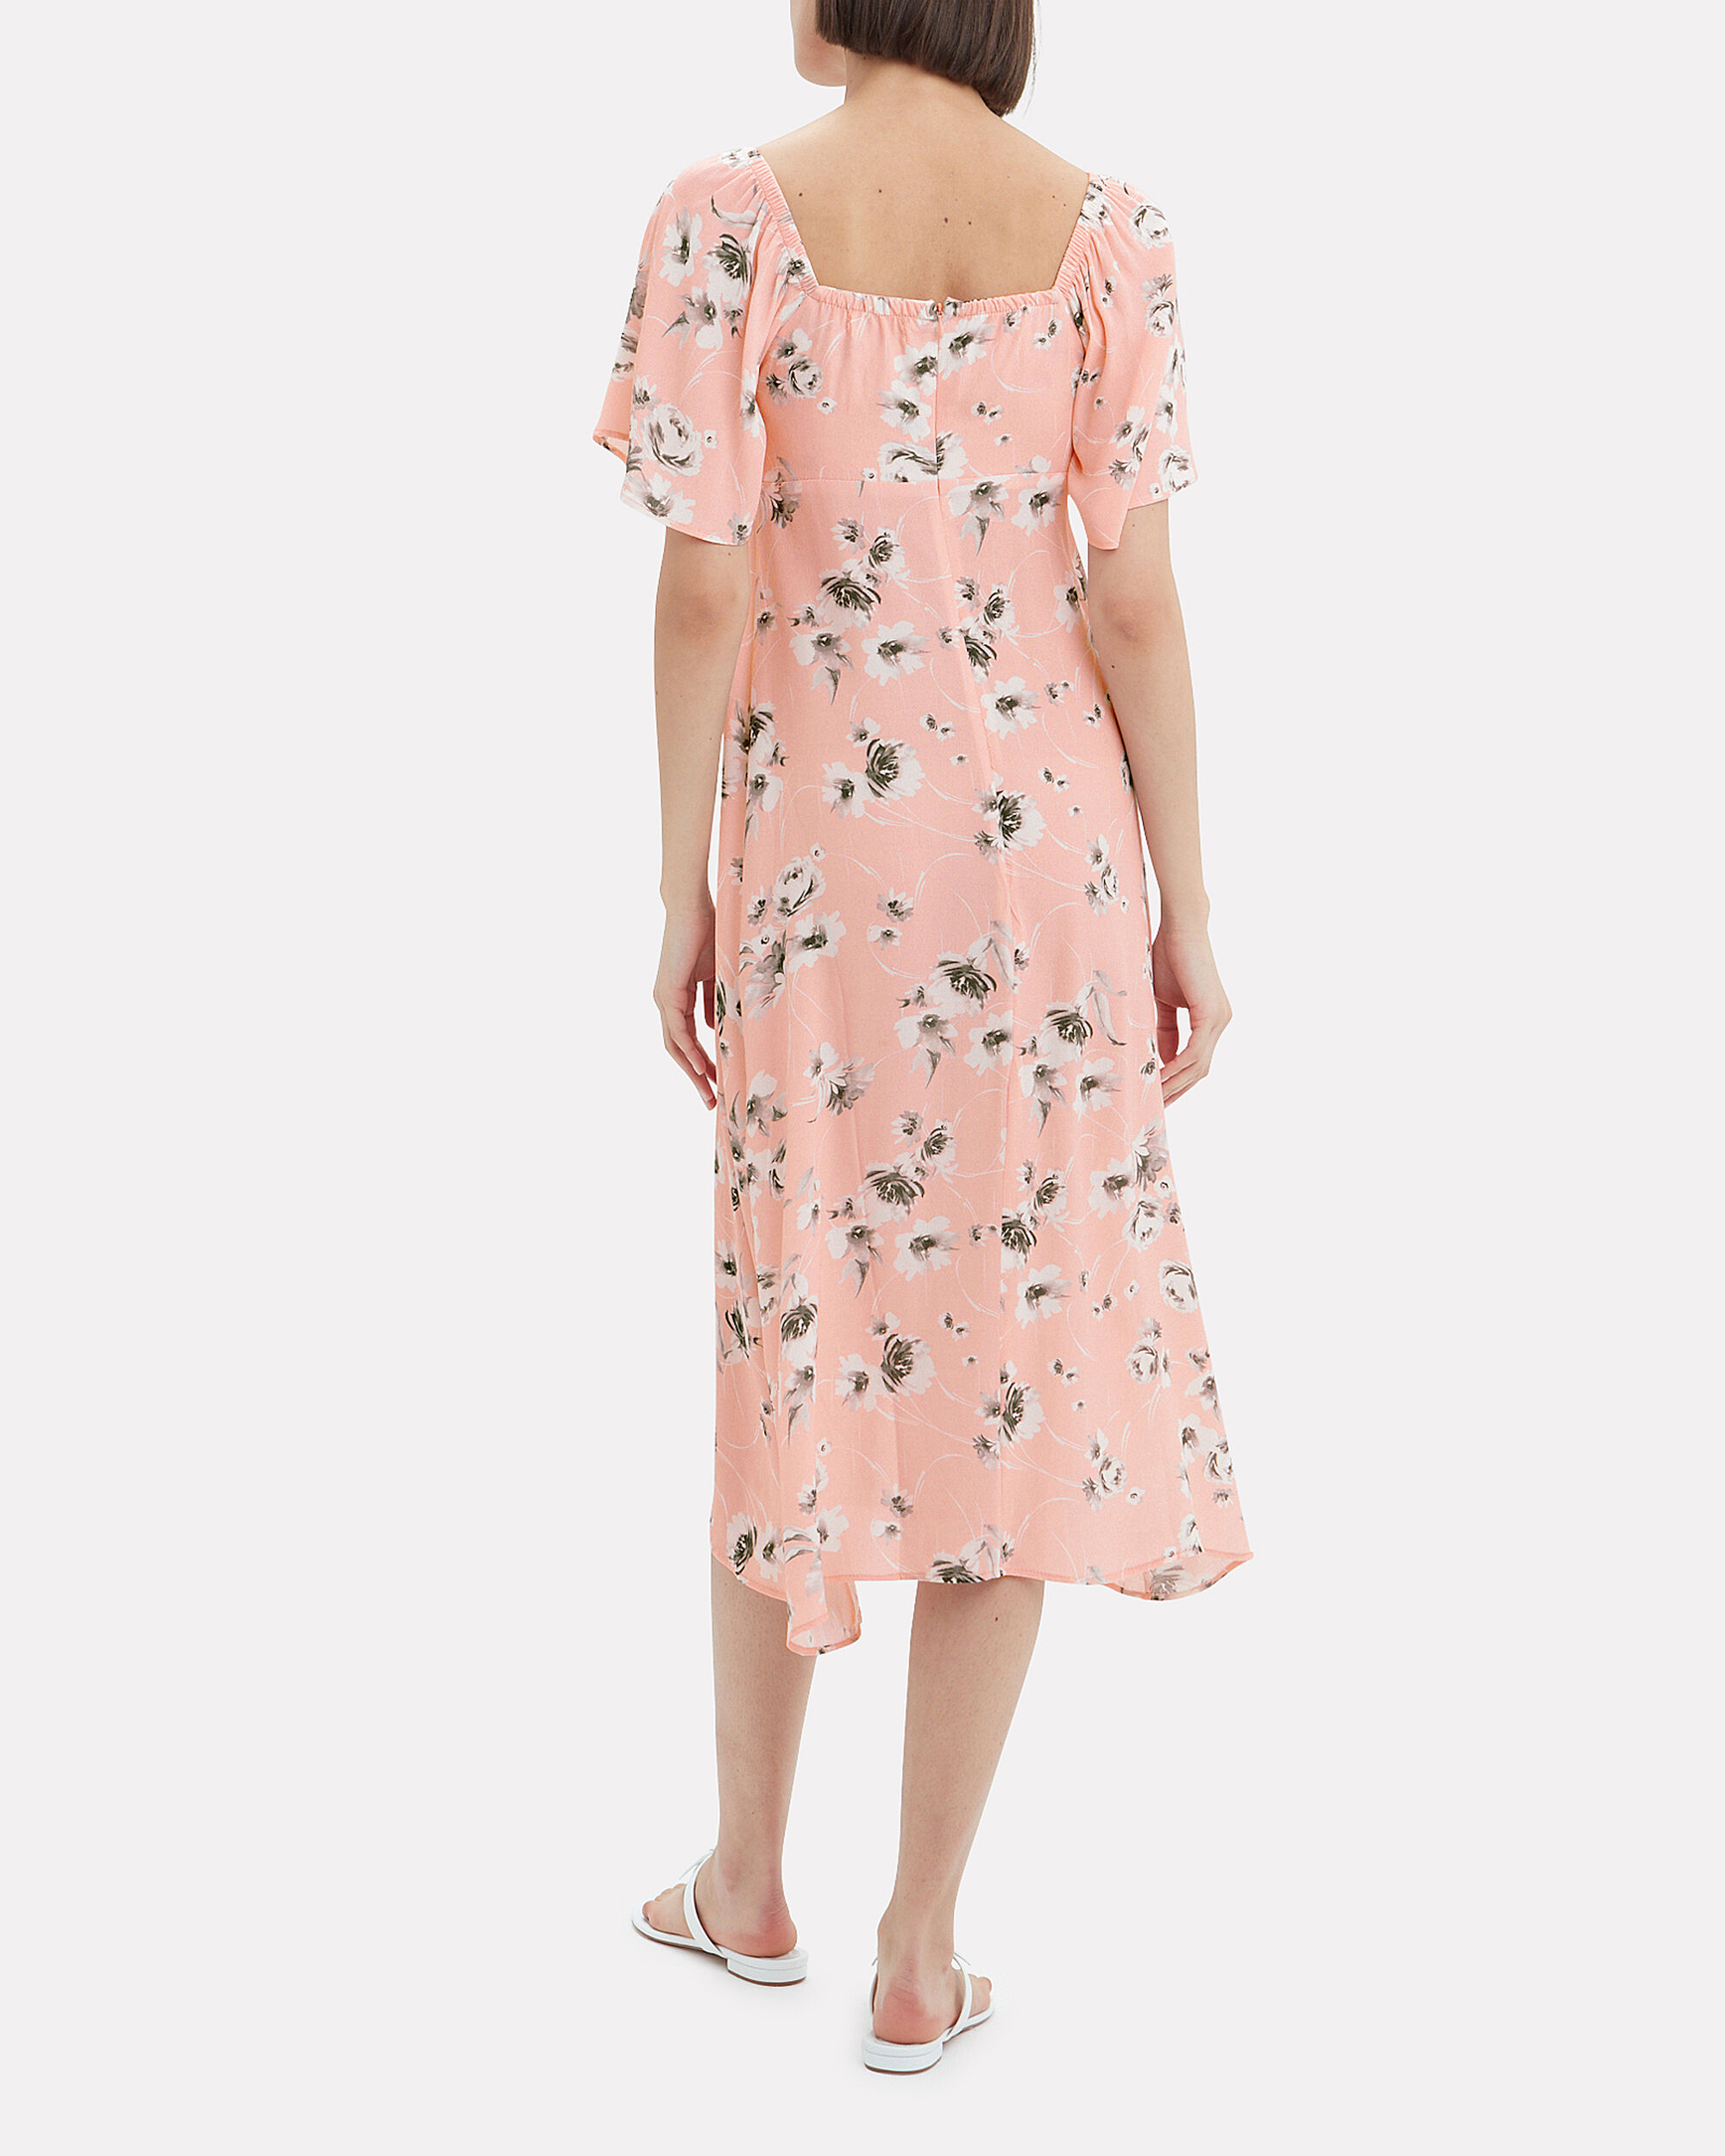 Tasha Midi Dress, BLUSH/FLORAL, hi-res